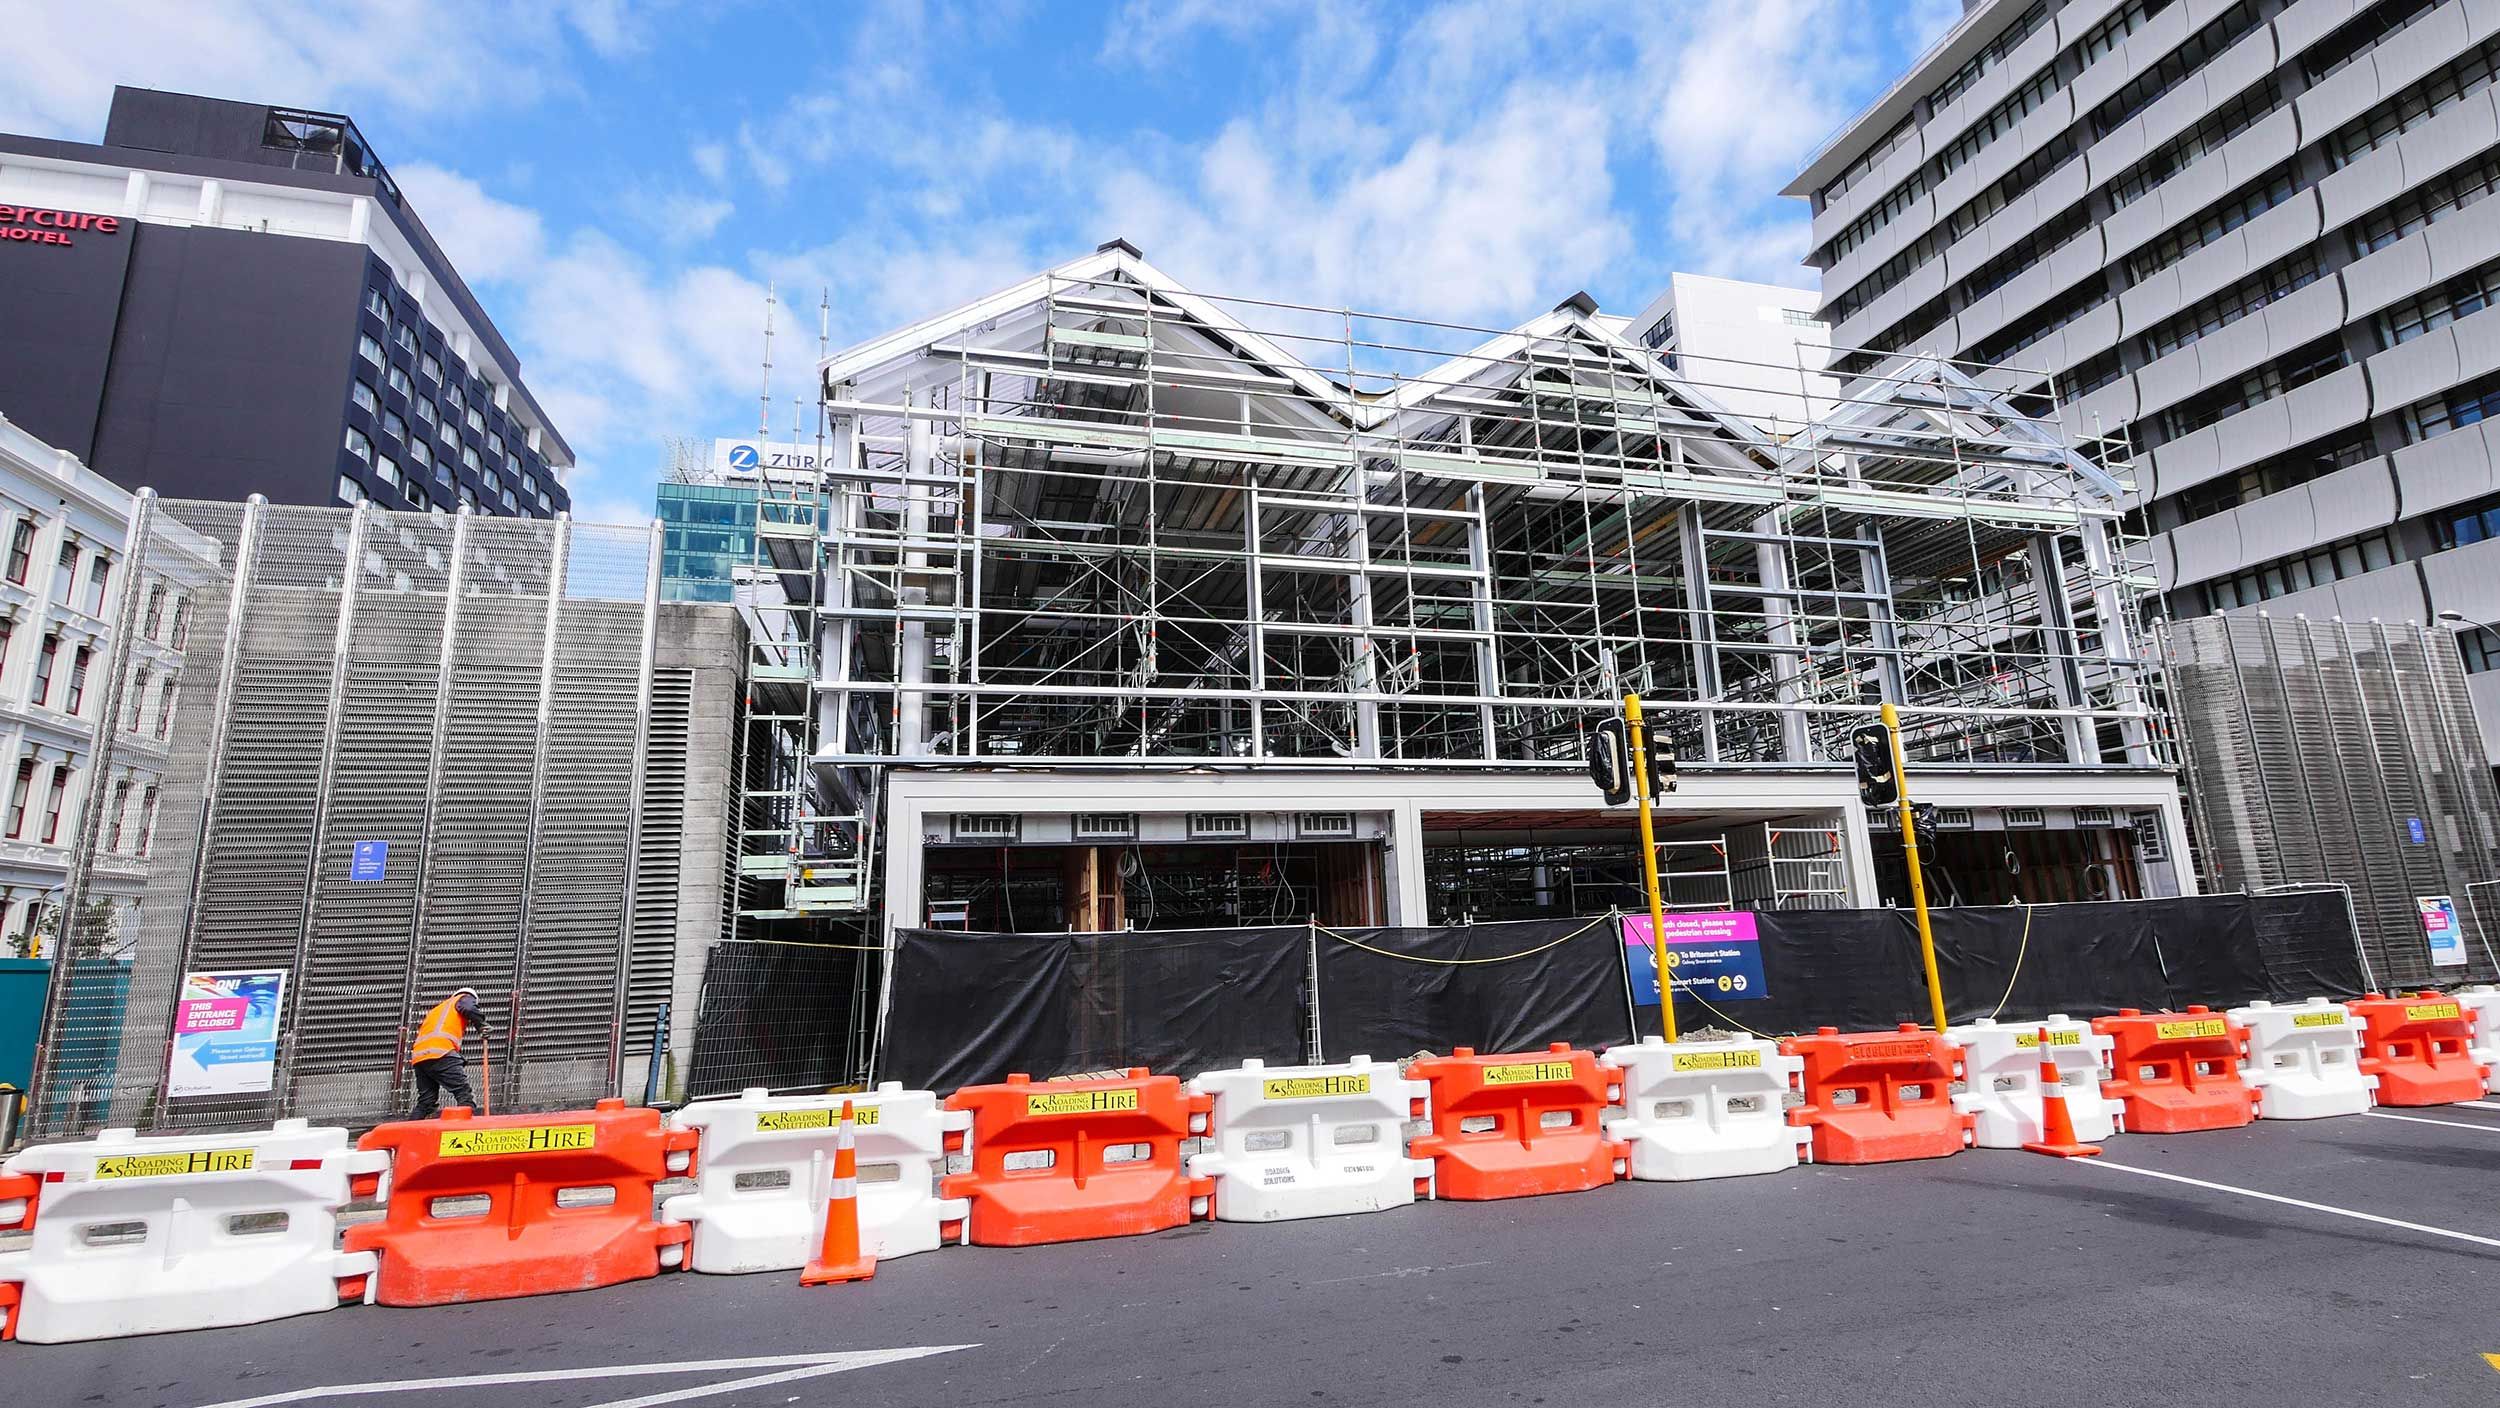 Temporary entrance for the Britomart train station